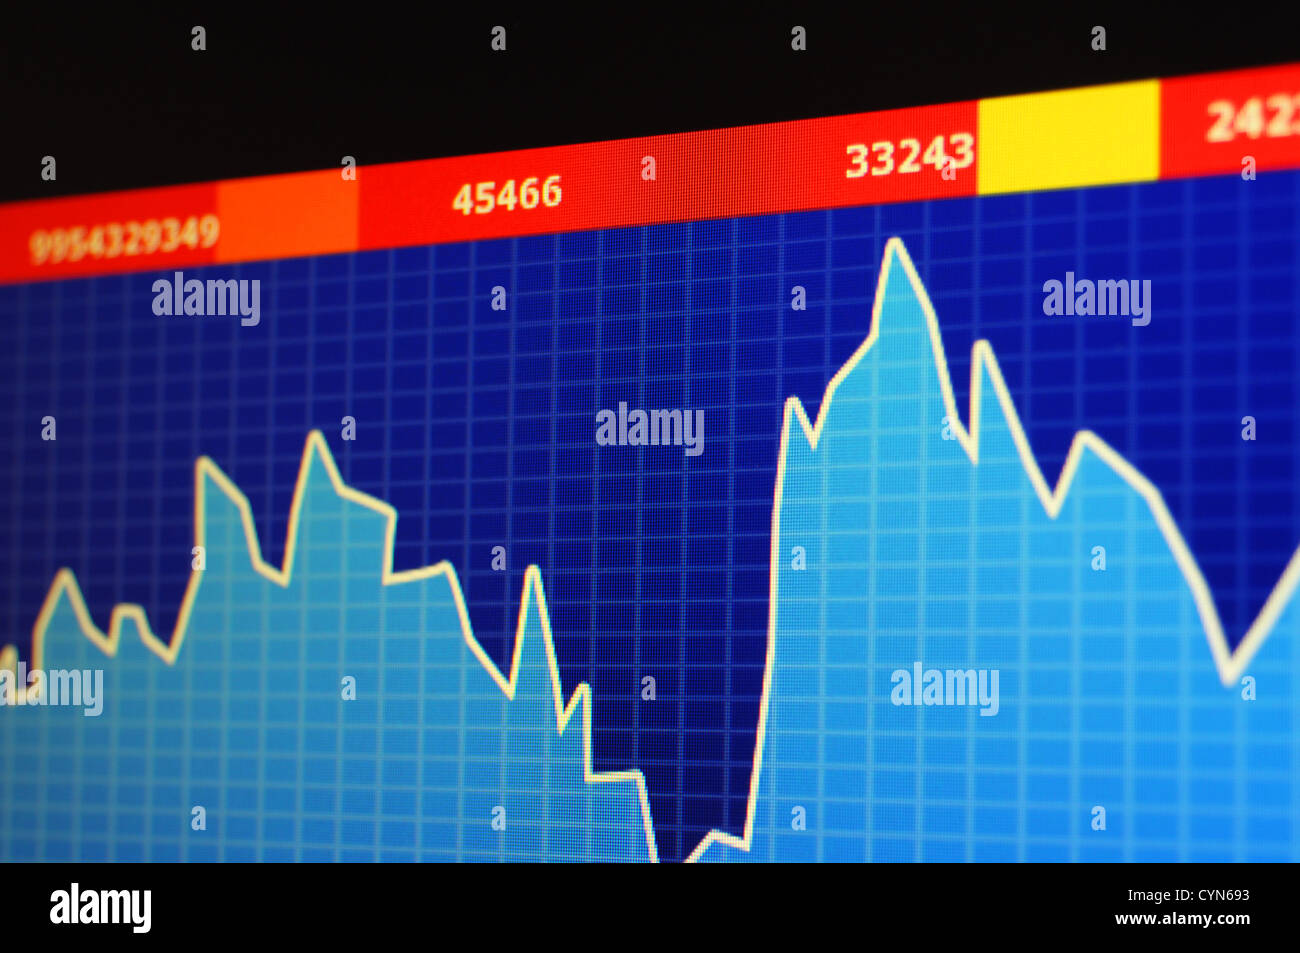 Chart Diagram Or Graph From The Stock Market On Computer Screen Stock Photo Alamy